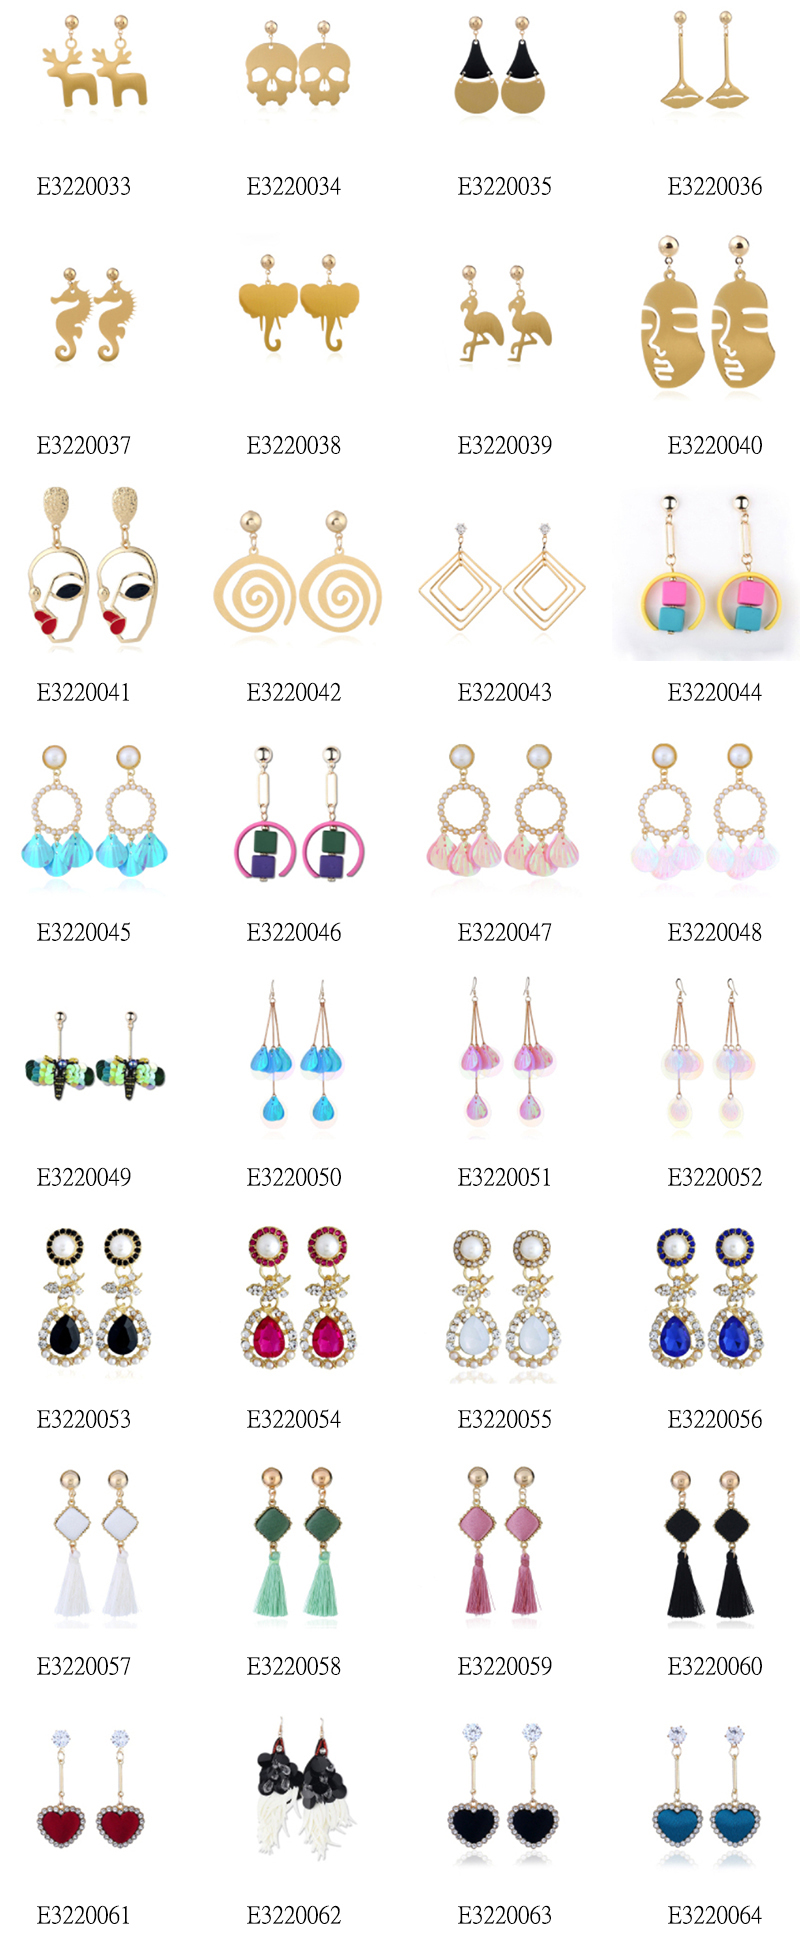 145 Zinc Alloy Earrings Design Idea Every Buyer Should Know - SOQ